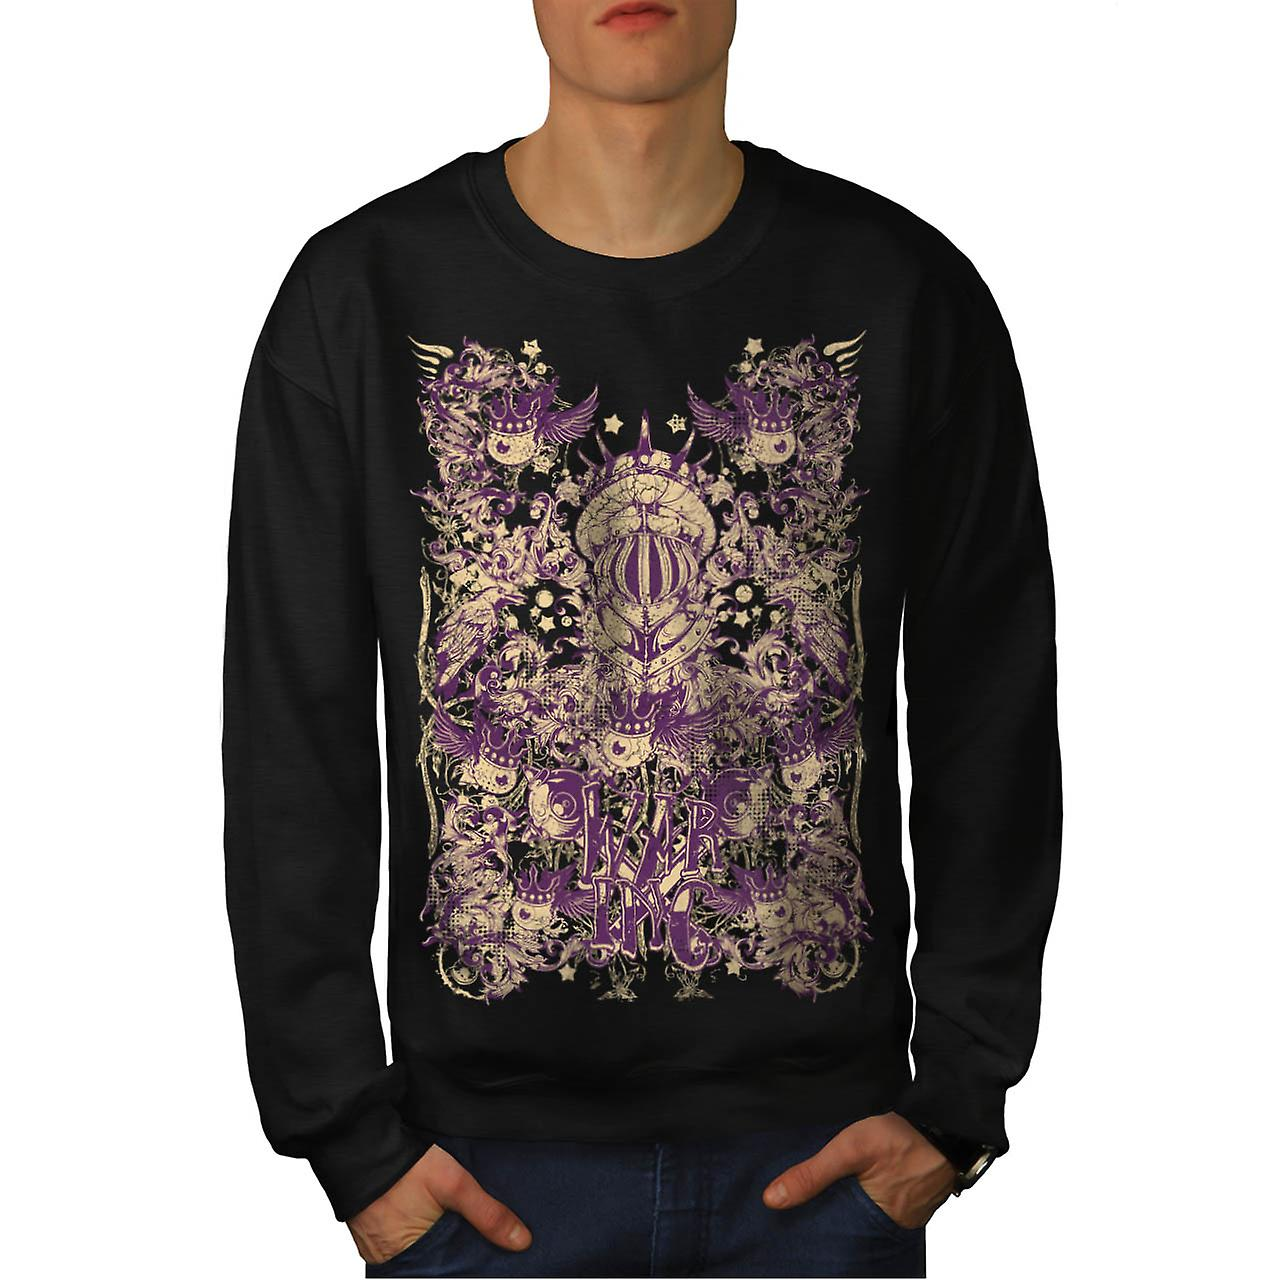 War Inc. Zombie Fashion Men Black Sweatshirt | Wellcoda